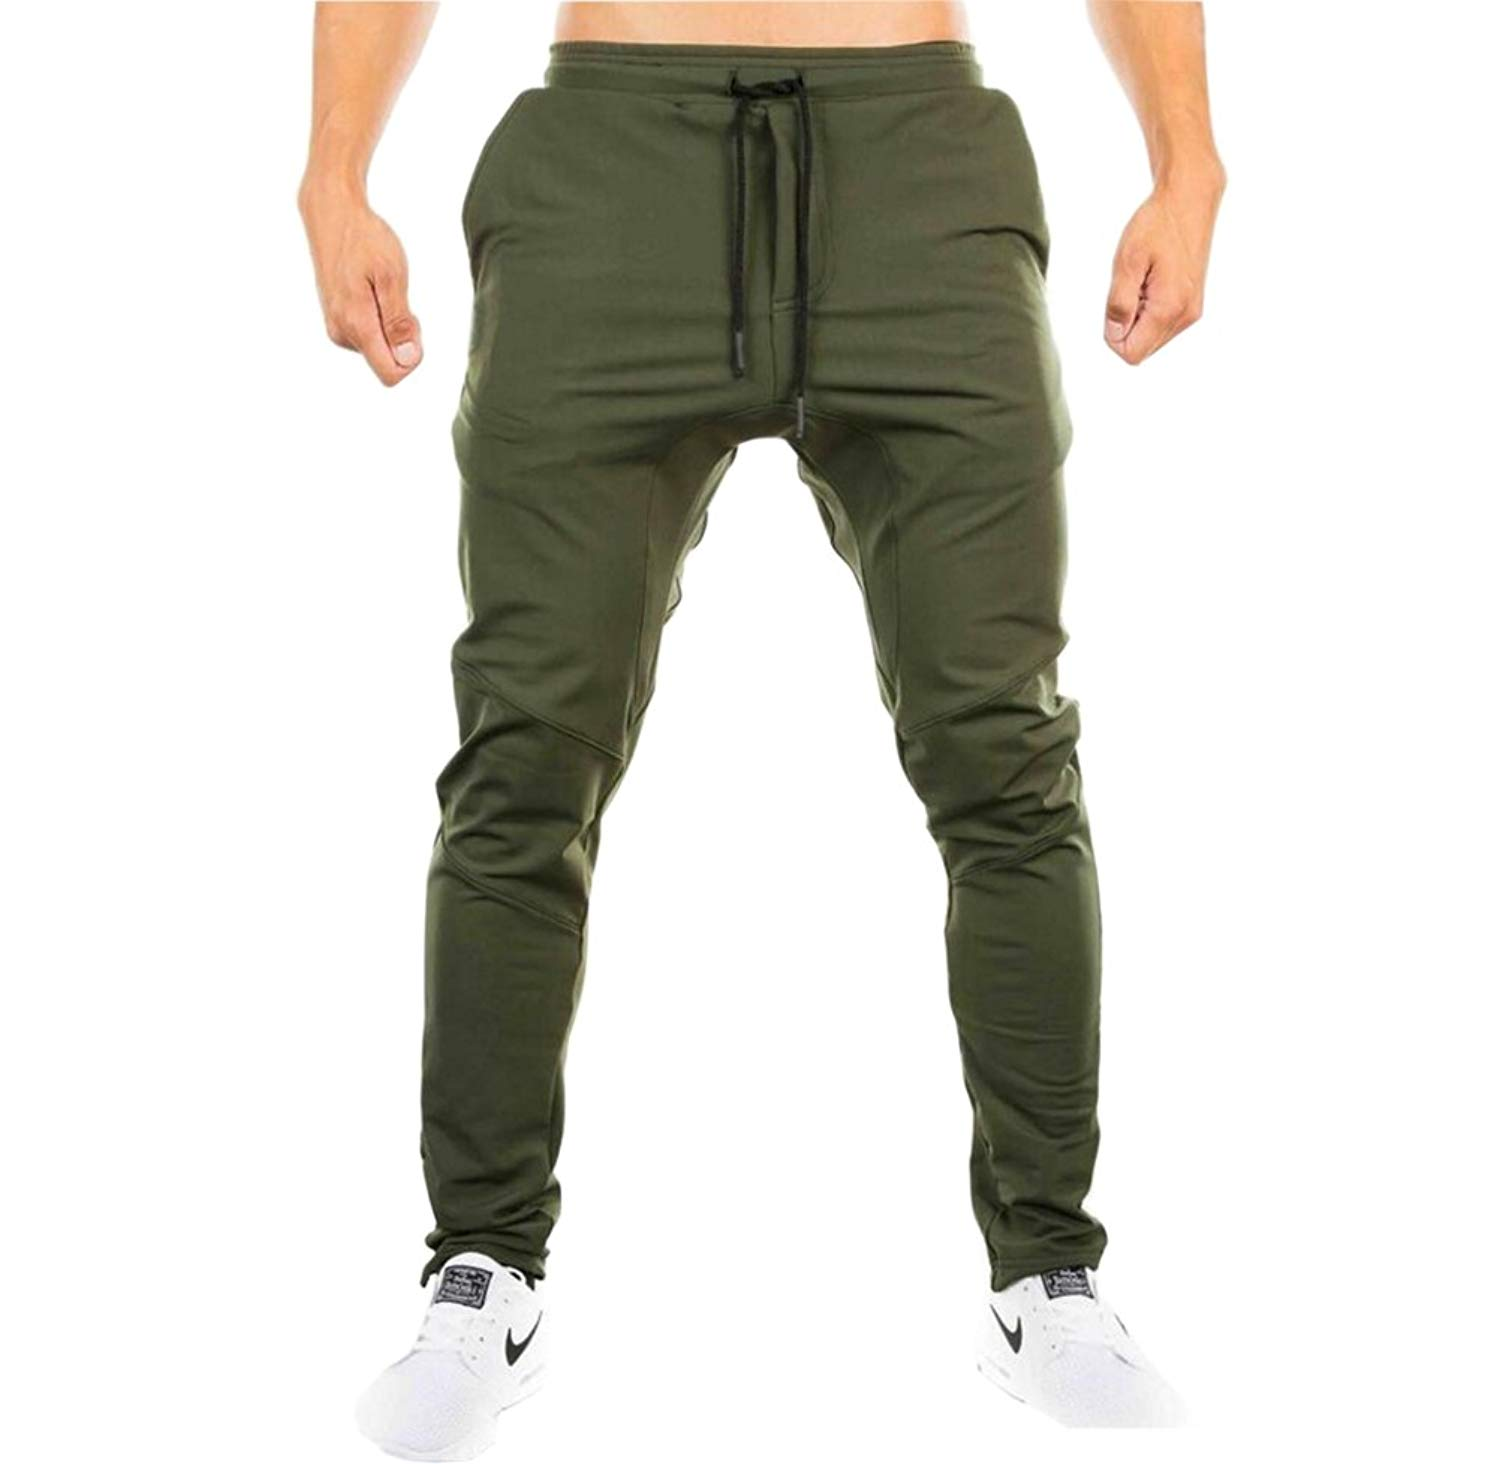 ONTBYB Men Gym Work Out Workout Slim Jogger Pants with Pockets